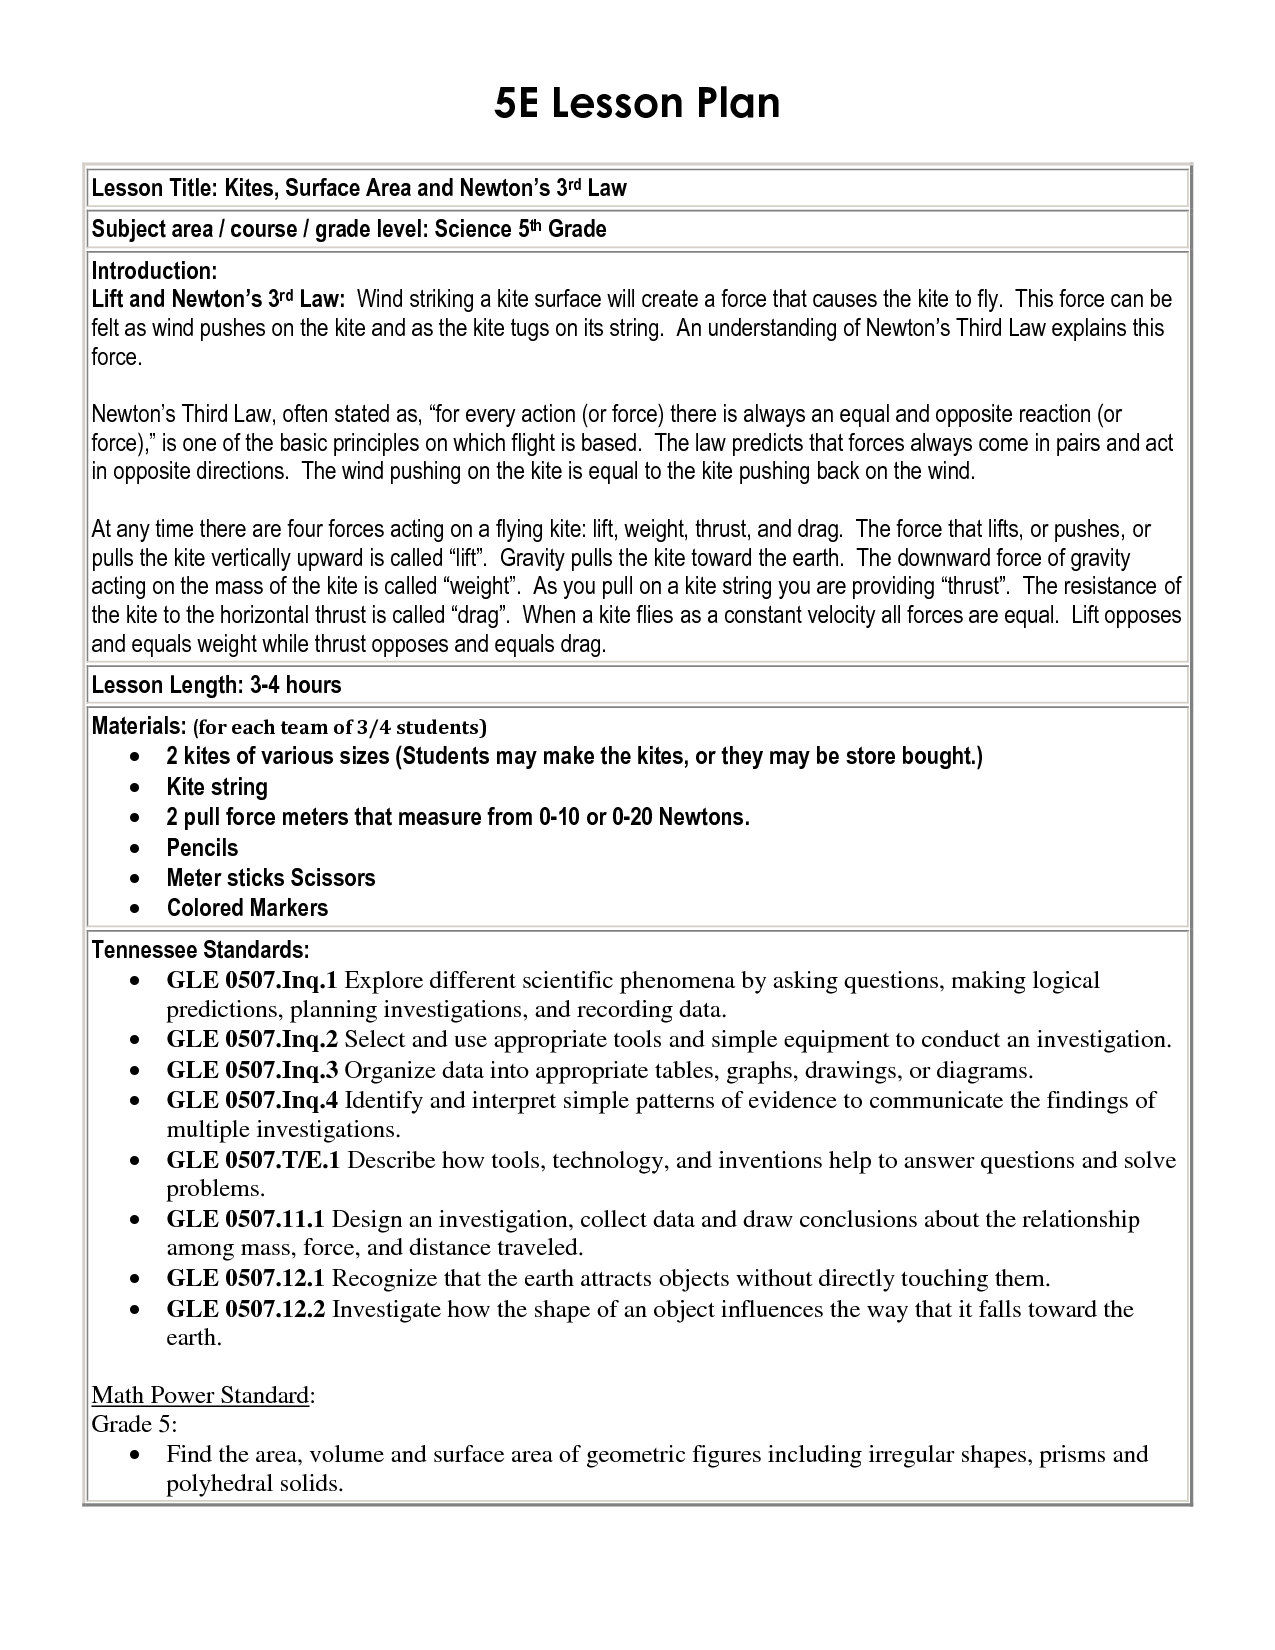 Sample Lesson Plan For Gifted Students Giftsite